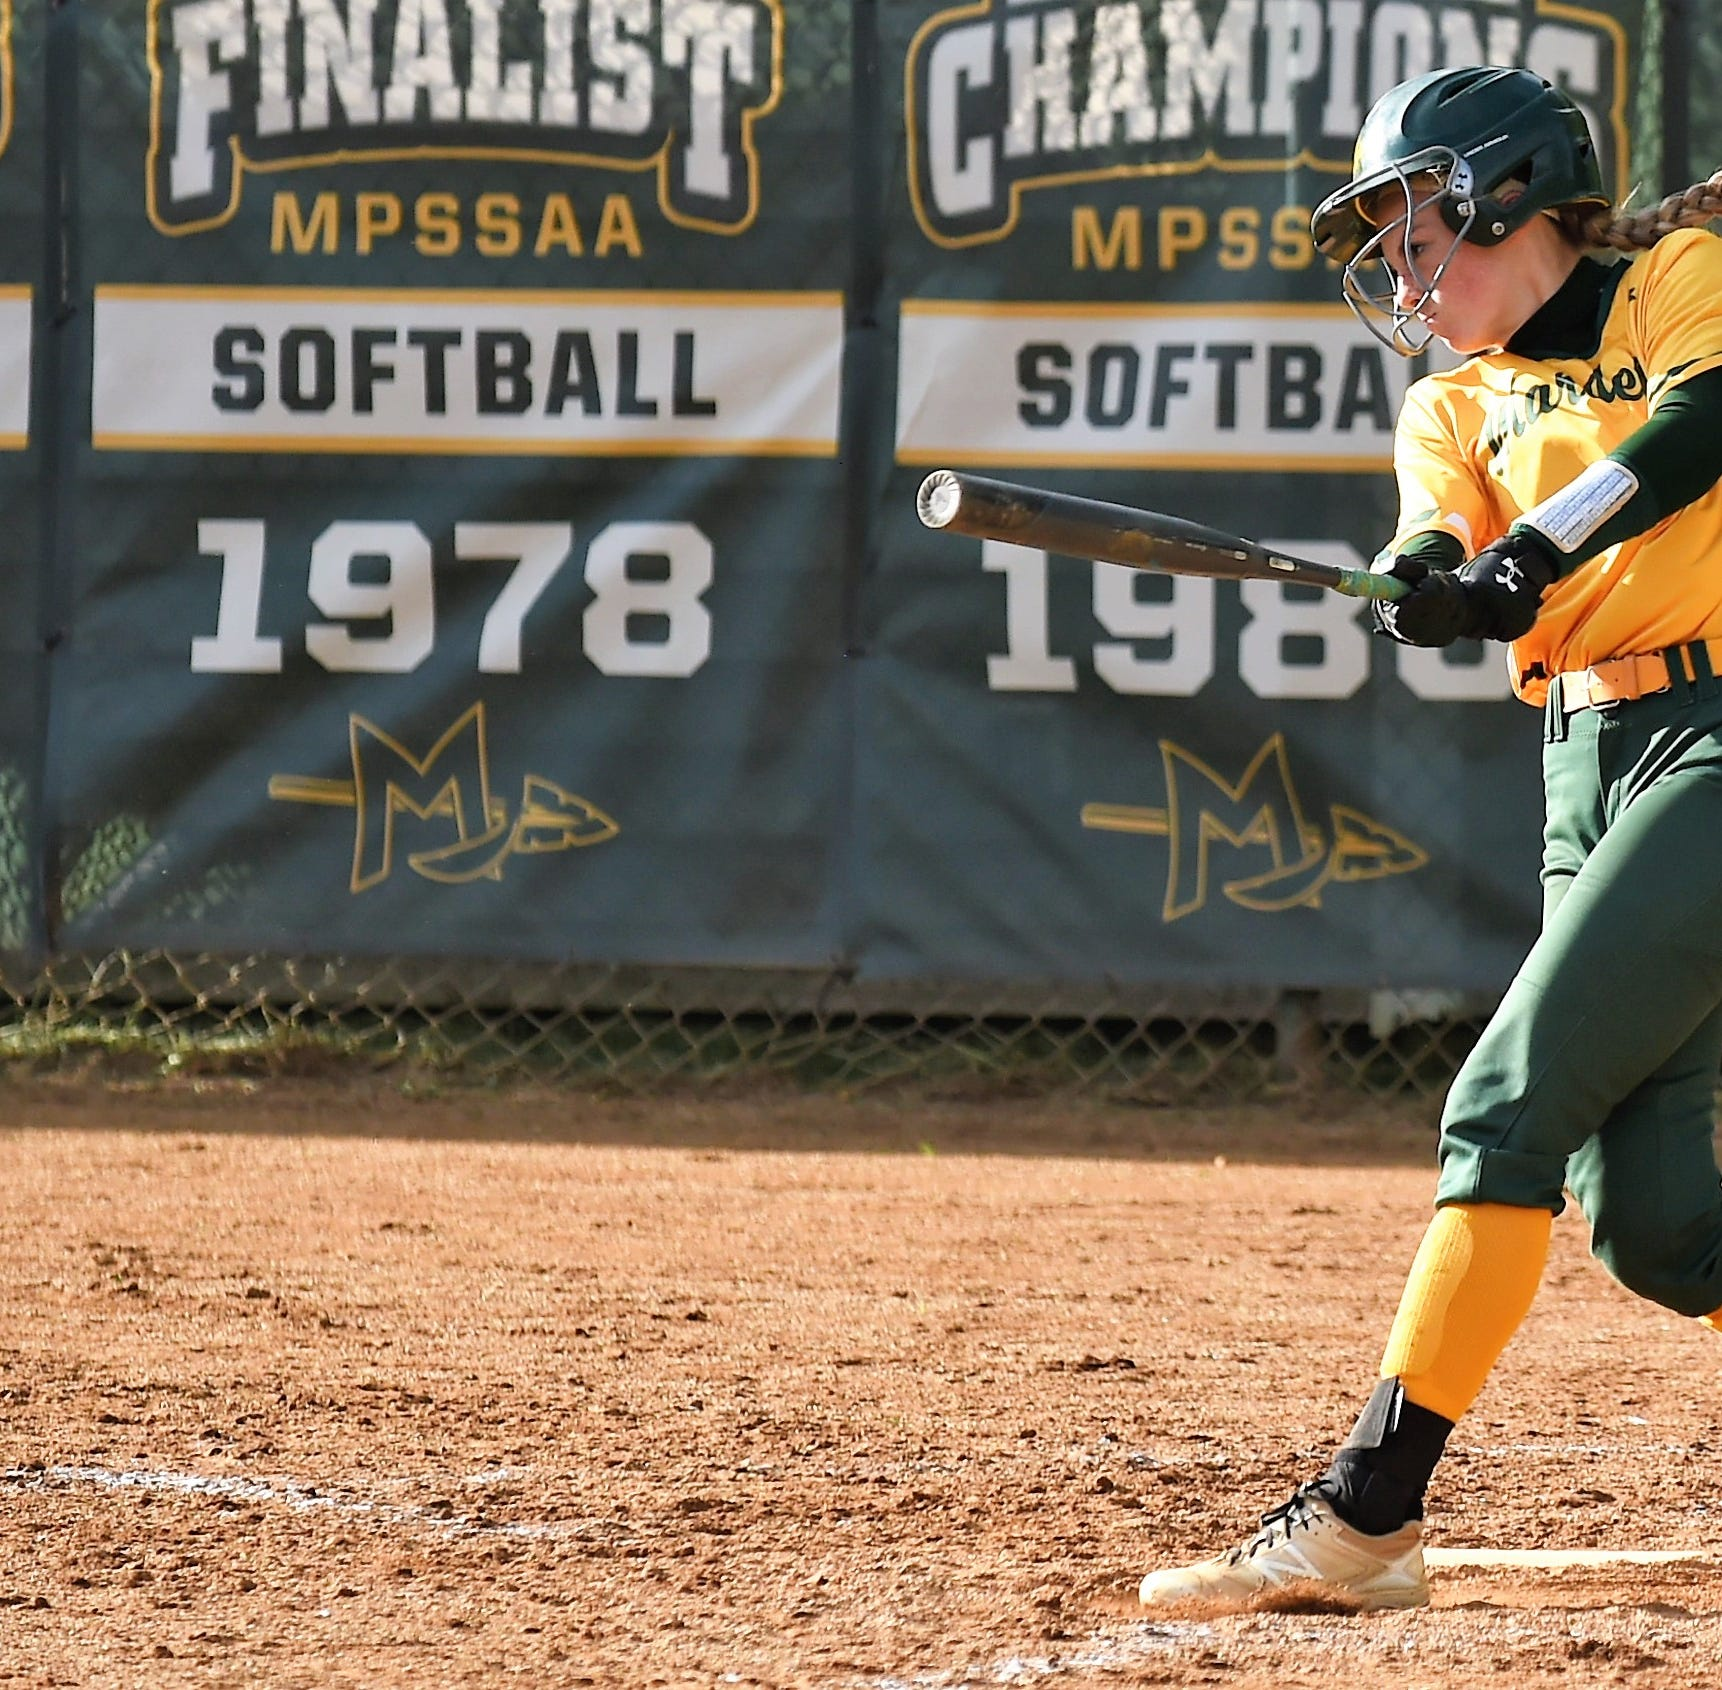 Mardela softball team looks to end long state title drought